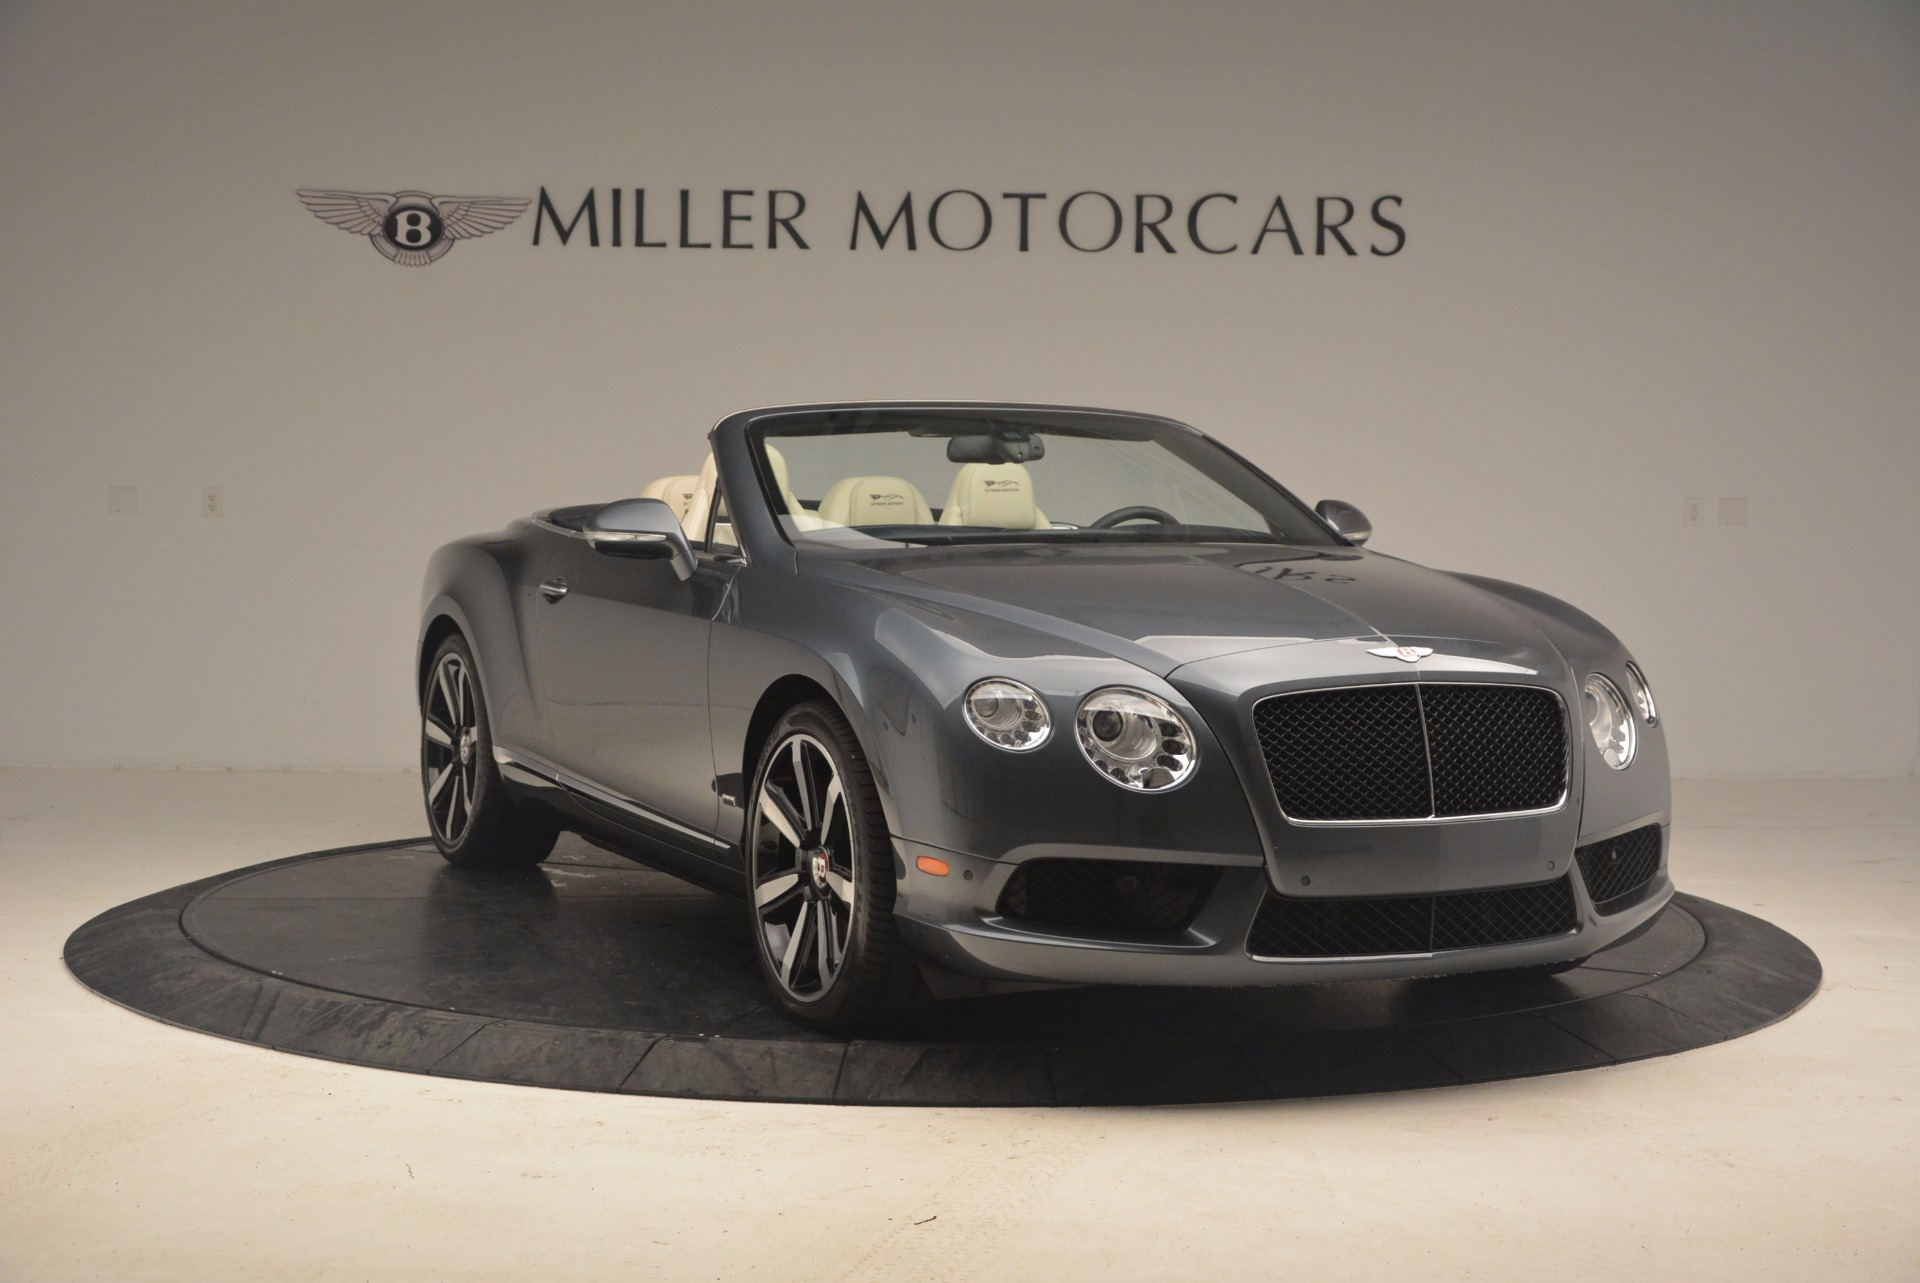 Used 2013 Bentley Continental GT V8 Le Mans Edition, 1 of 48 For Sale In Westport, CT 1288_p11